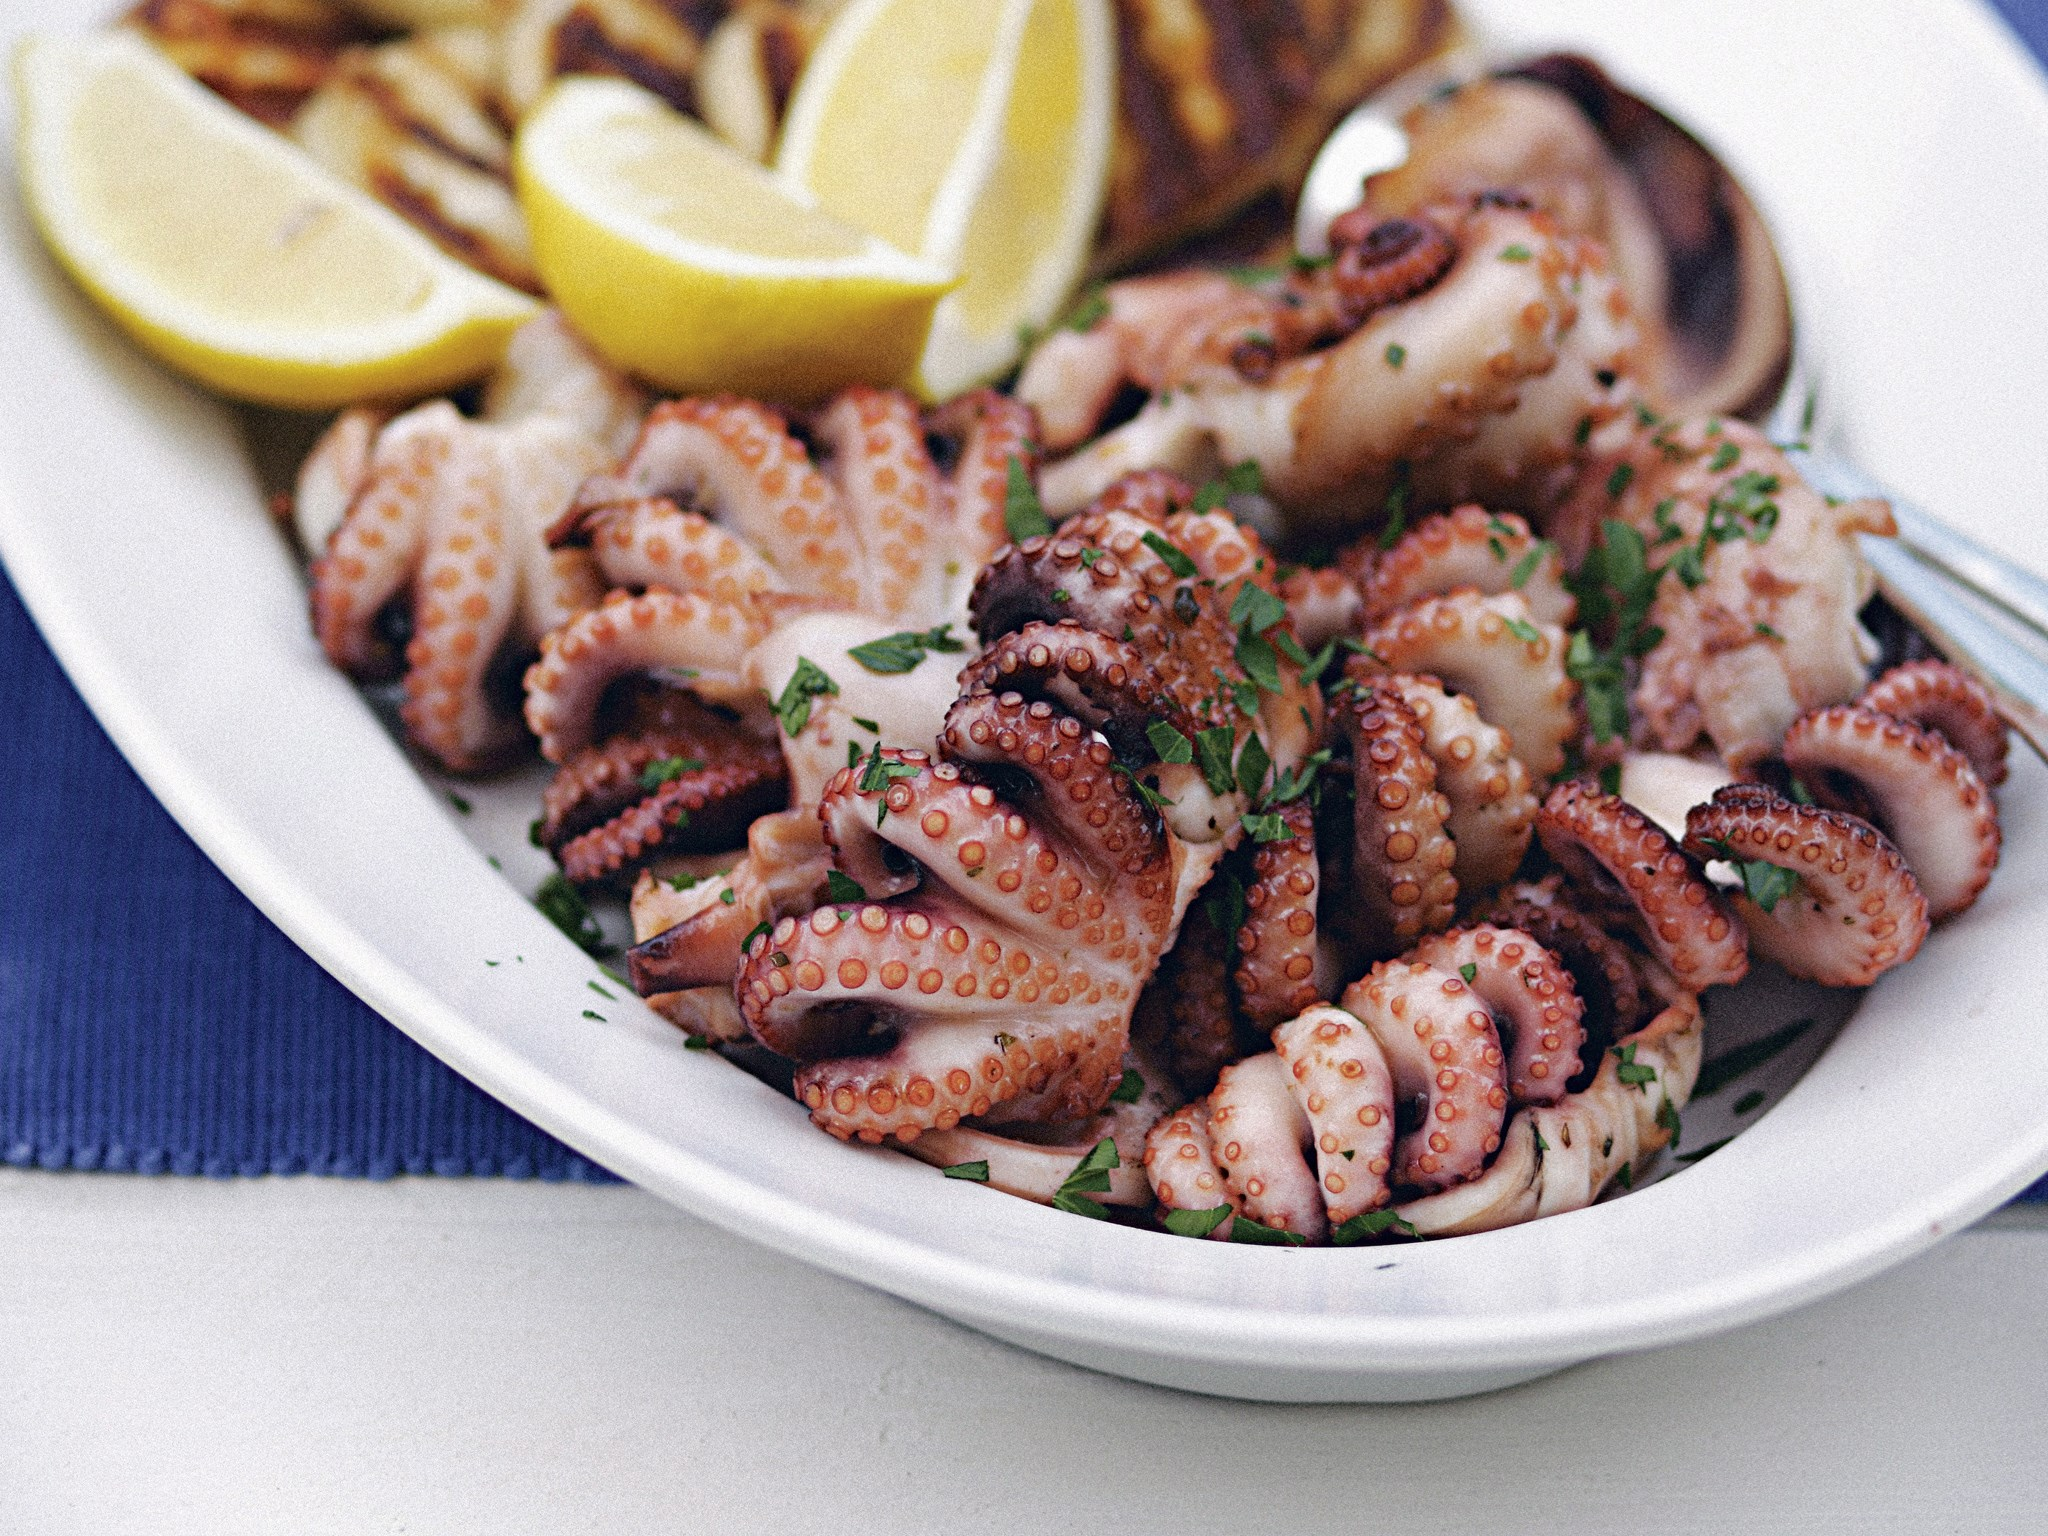 **OCTOPUS:** Whether you're barbecuing octopus skewers, throwing them on your tacos or [teaming your classic char-grilled version with haloumi](http://www.foodtolove.com.au/recipes/greek-char-grilled-octopus-octapothi-sta-karvouna-7446), octopus has seen a recent surge in Pinterest searches. But, will it continue into 2017? They certainly think so!